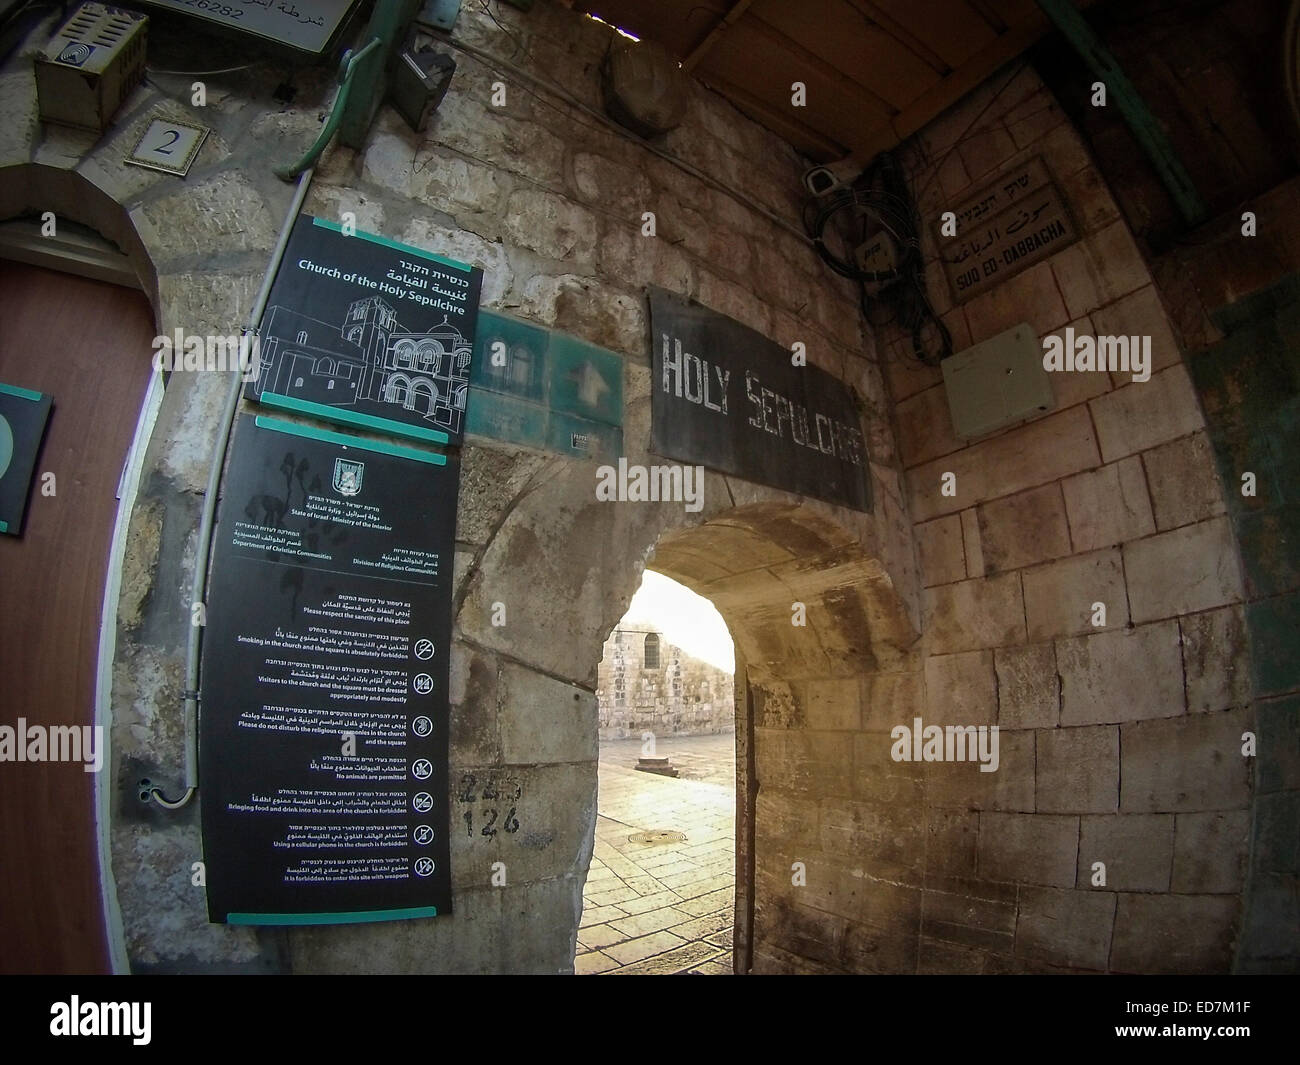 Entrance to The Church of the Holy Sepulchre also called the Basilica of the Holy Sepulchre,Old City,Jerusalem. - Stock Image